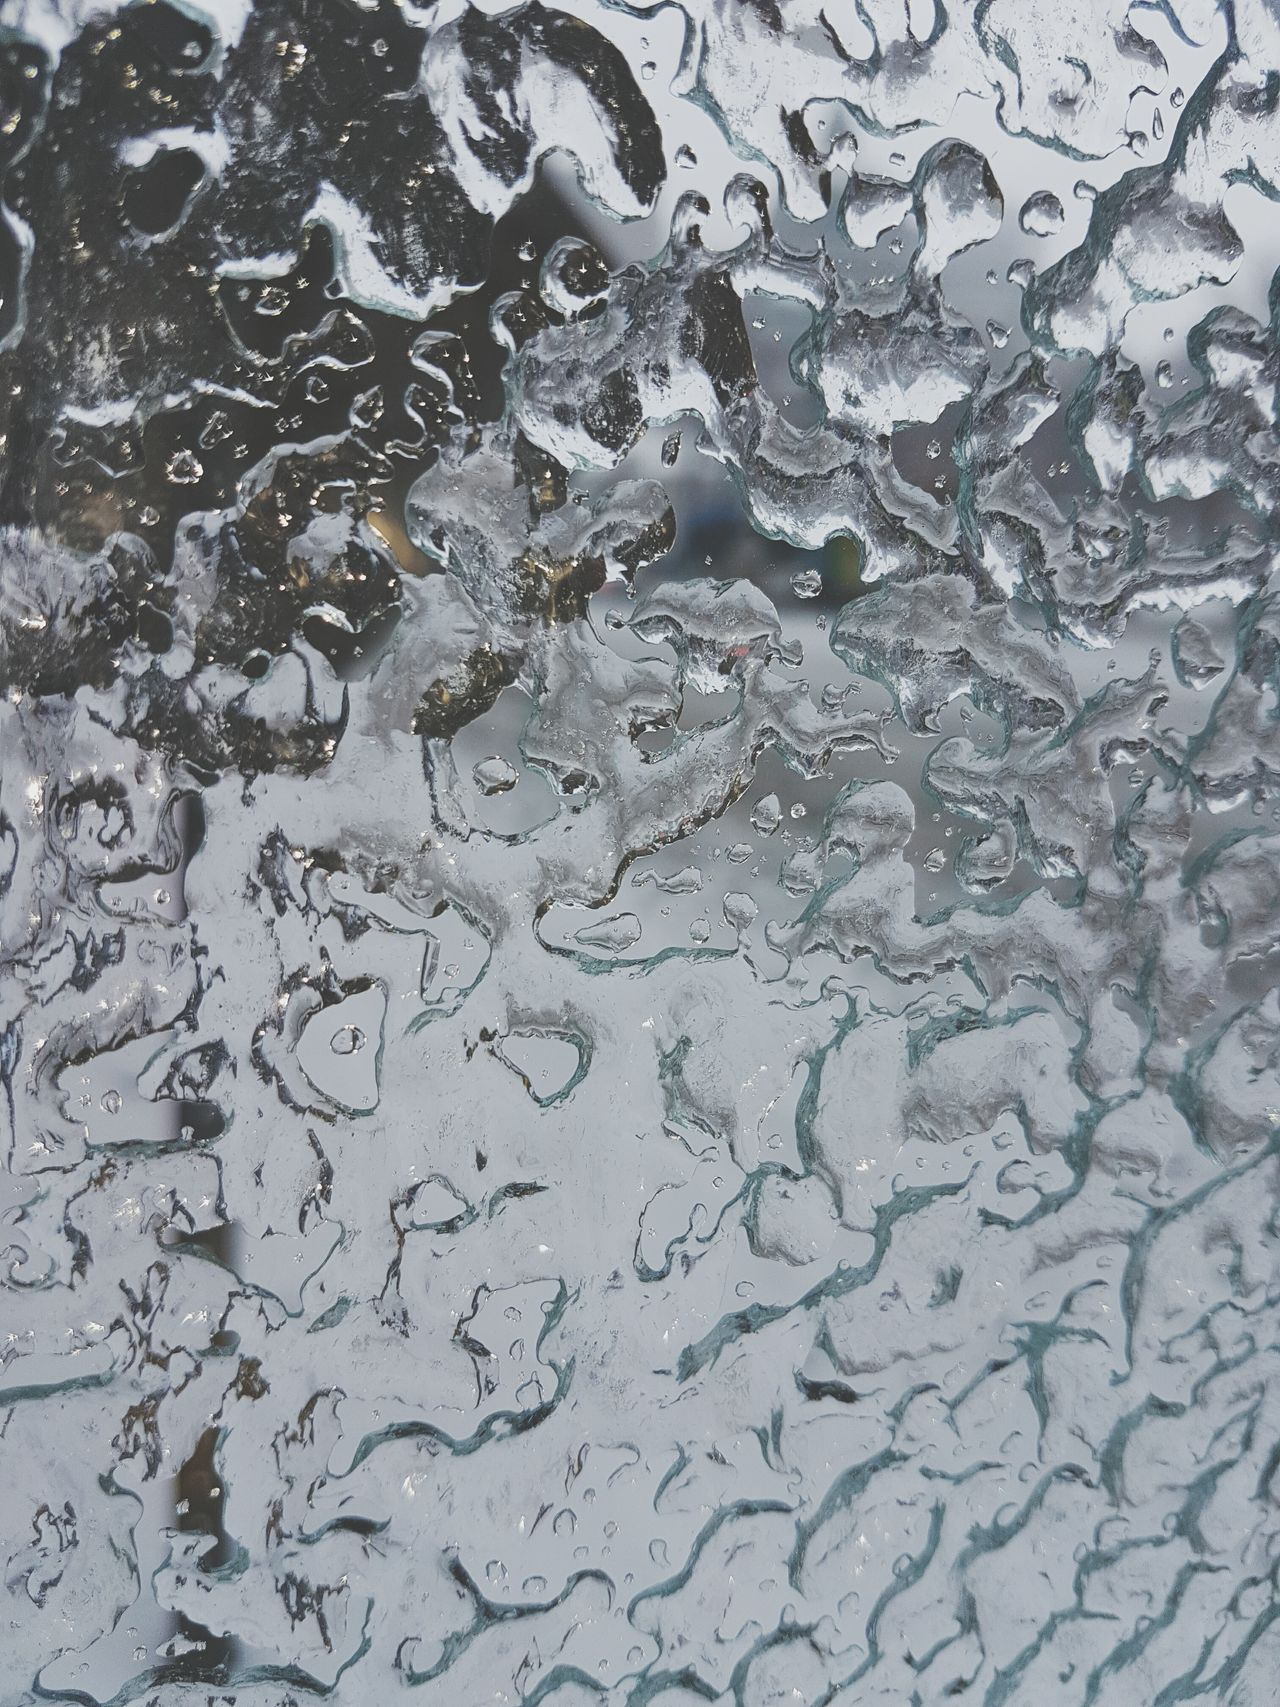 Looking through the window... Ice Ice Age Icy Day Icy Coating Icy Condition Icy Window Glace Montreal, Canada Icy Rain Freezing Rain Winter Winter 2017 Window View Textured  Textures And Surfaces